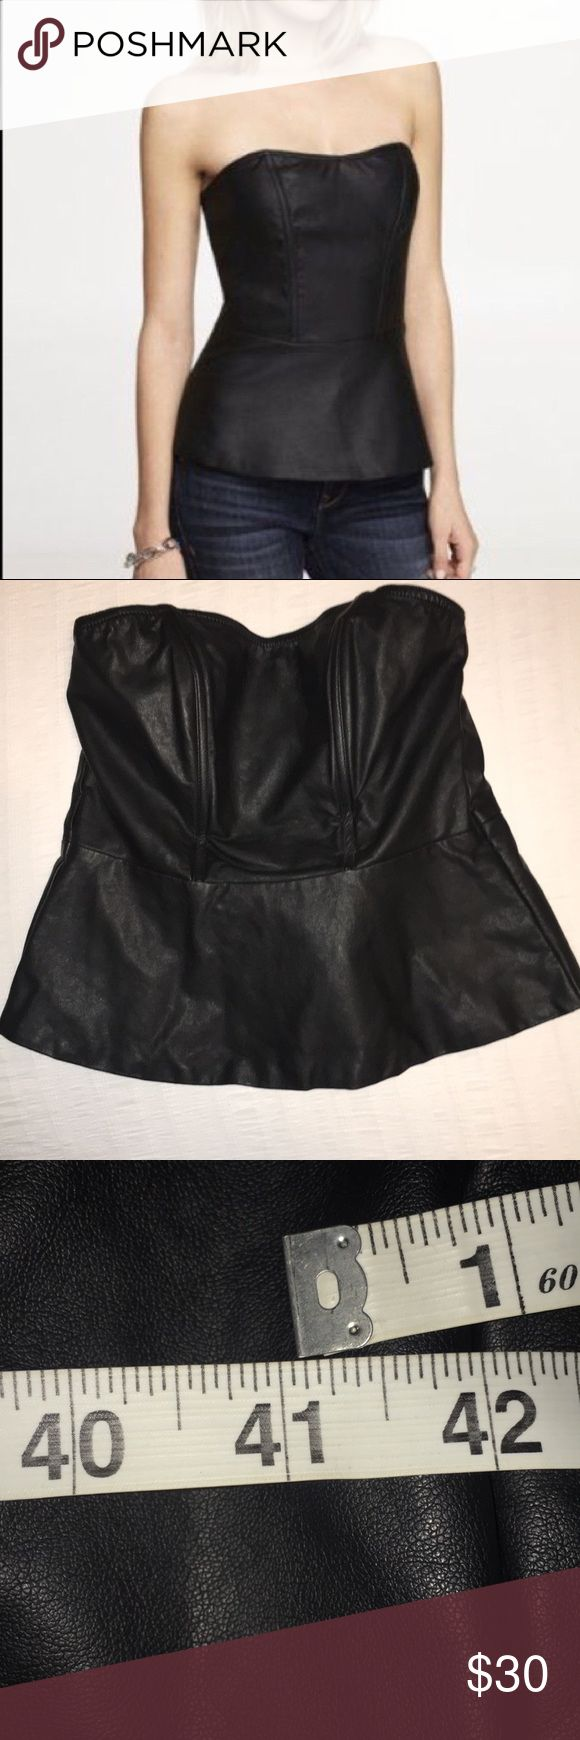 Express vegan leather peplum top Please read full description, measurements are larger than standard express measuring chart.  Perfect condition Express vegan leather peplum top. Very structured, boning in the front. Zipper in the back. Leather on both front & back Size L but fits like an XL.  Measurements at largest part of the chest is 41 inches. Measurements at smallest part of waist is 39 inches. Express Tops